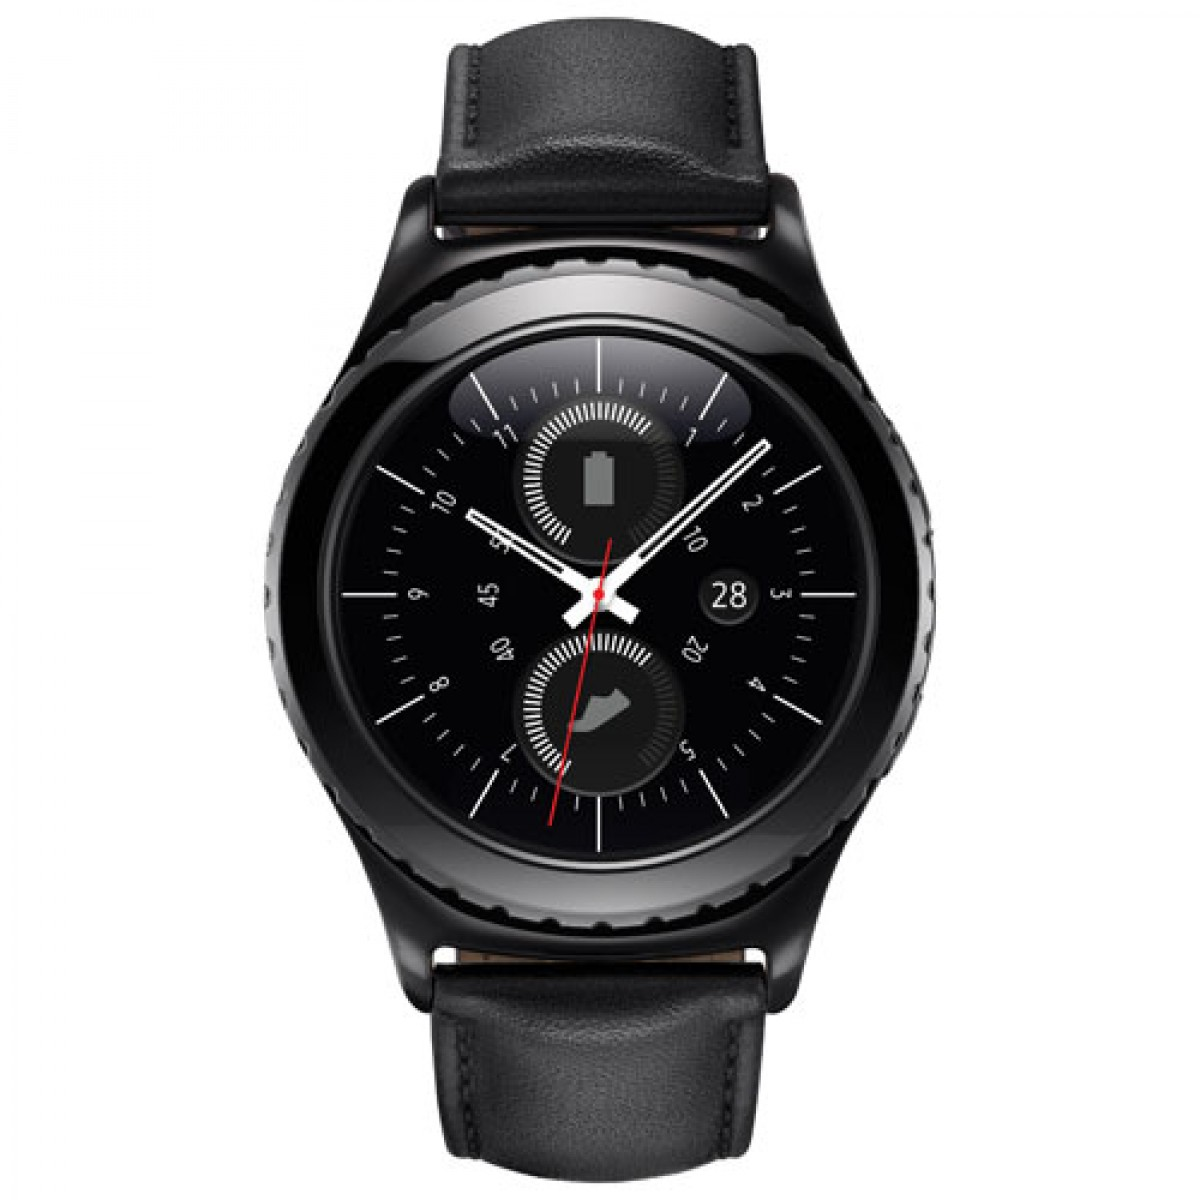 Samsung Gear S2 Classic Smartwatch with Heart Rate Monitor ...